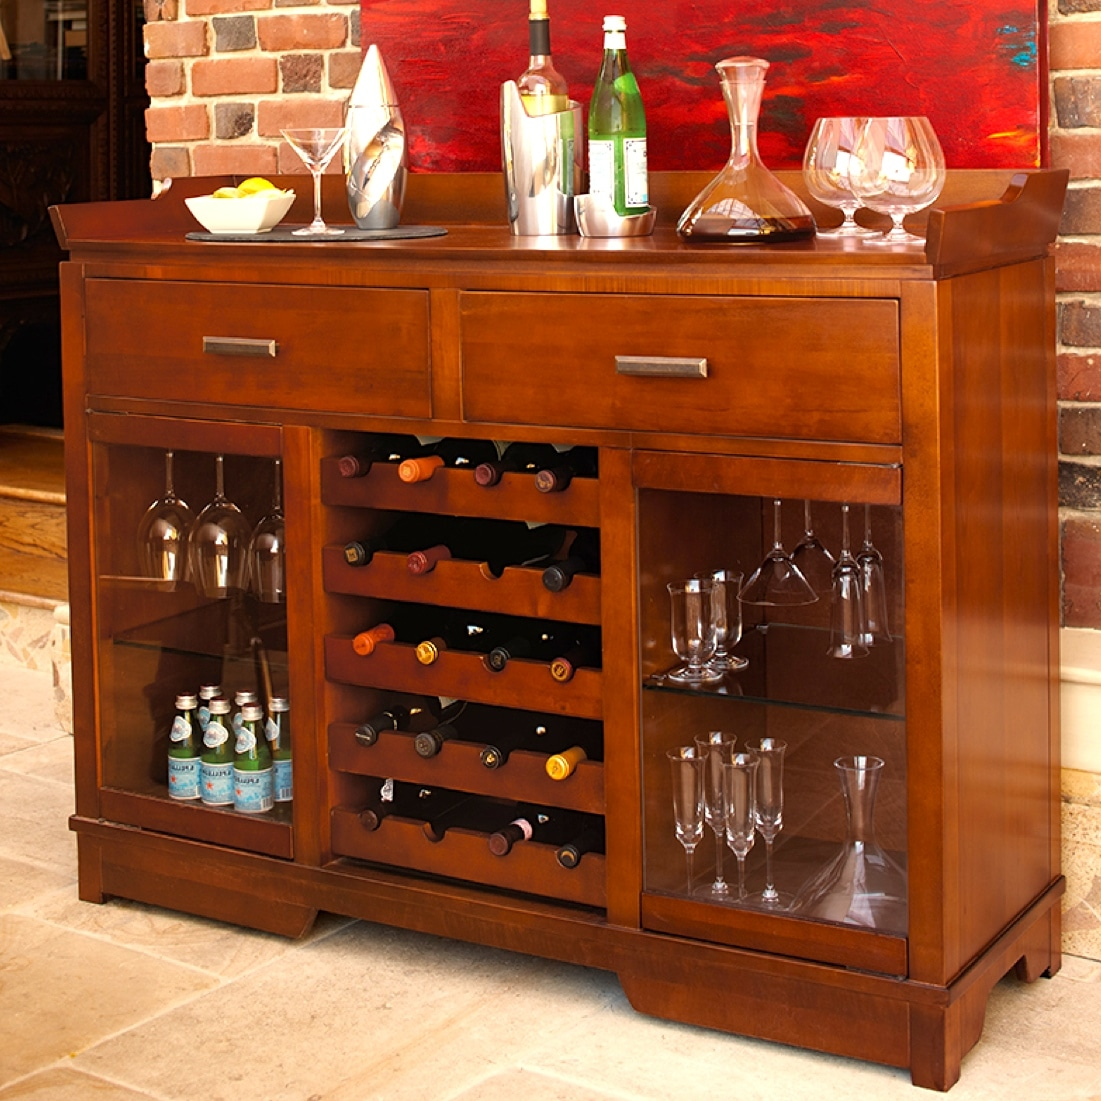 Click here to see more wine furniture